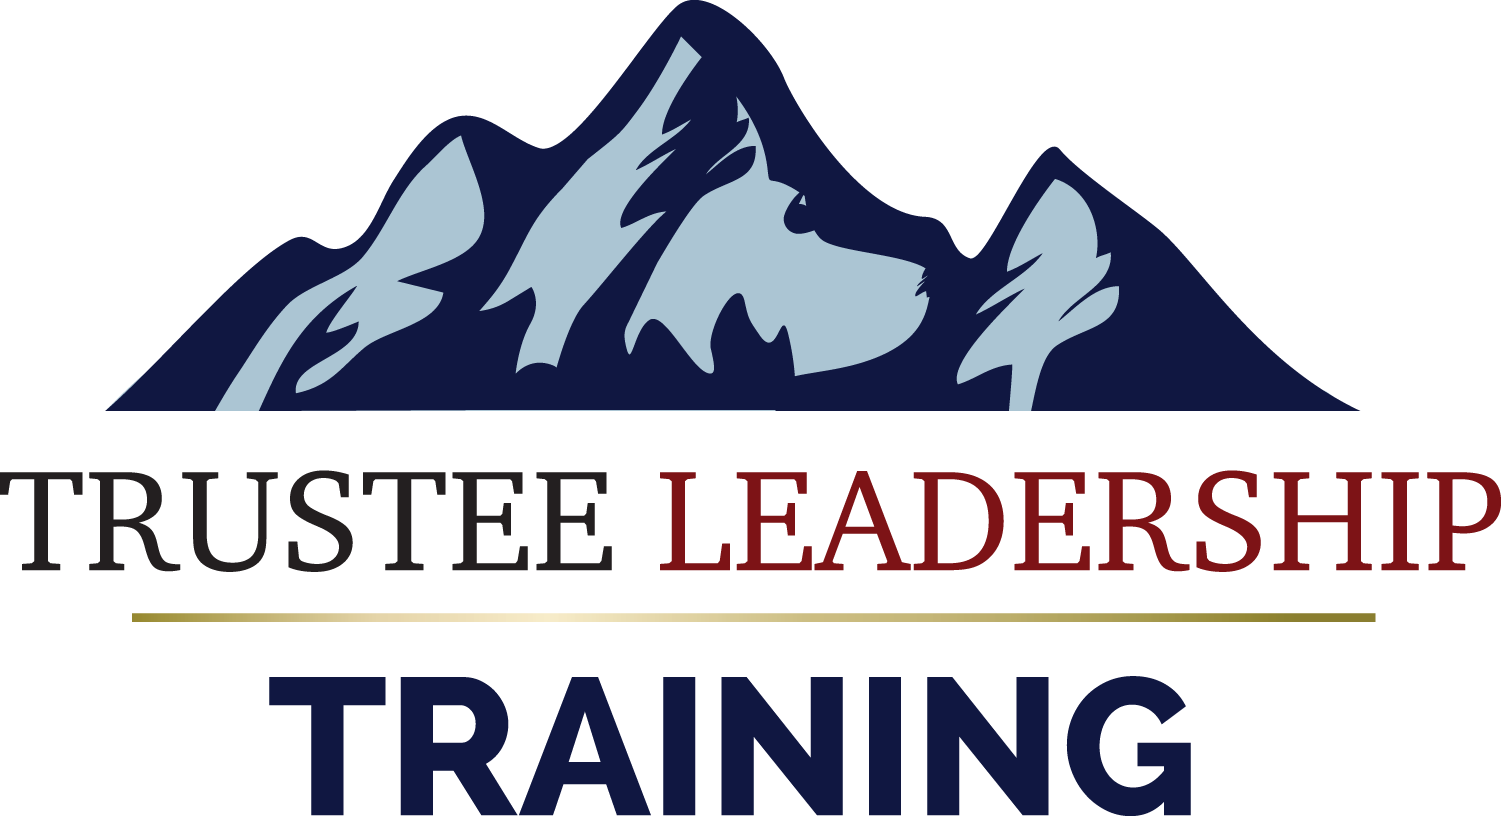 Trustee Leadership Training